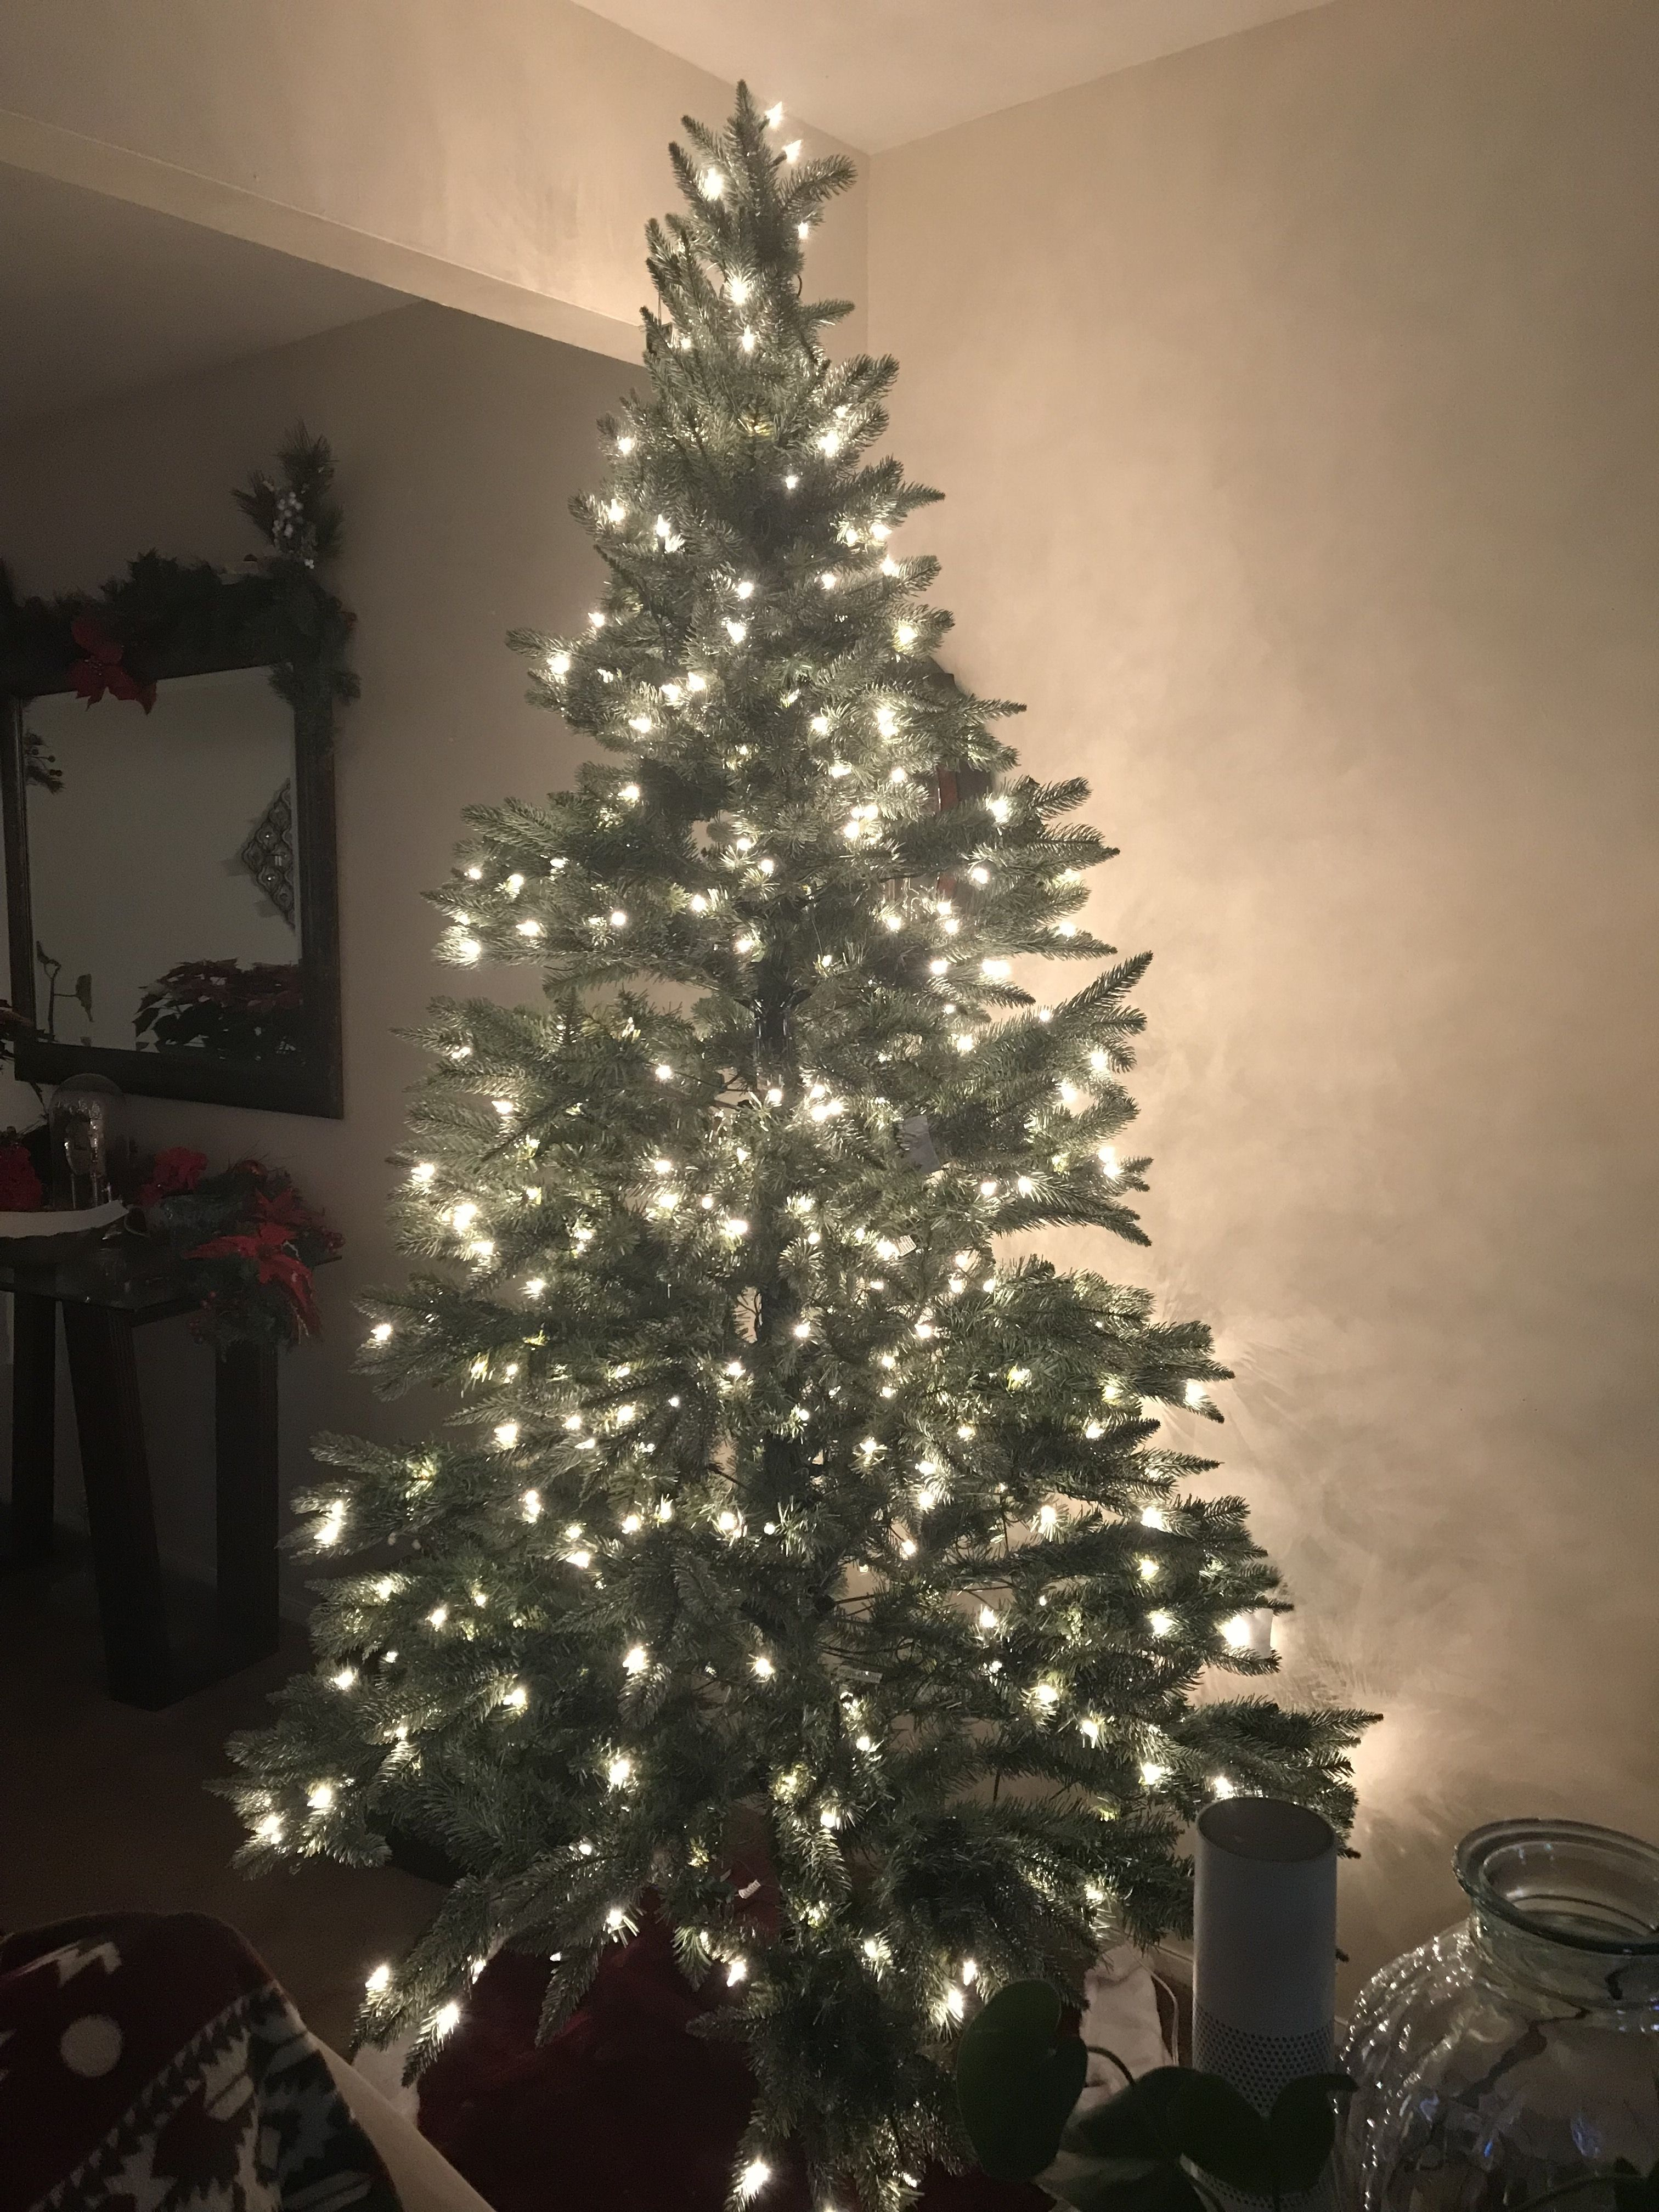 Real Vs Artificial Christmas Trees Pros And Cons Artificial Christmas Tree Christmas Tree Tree